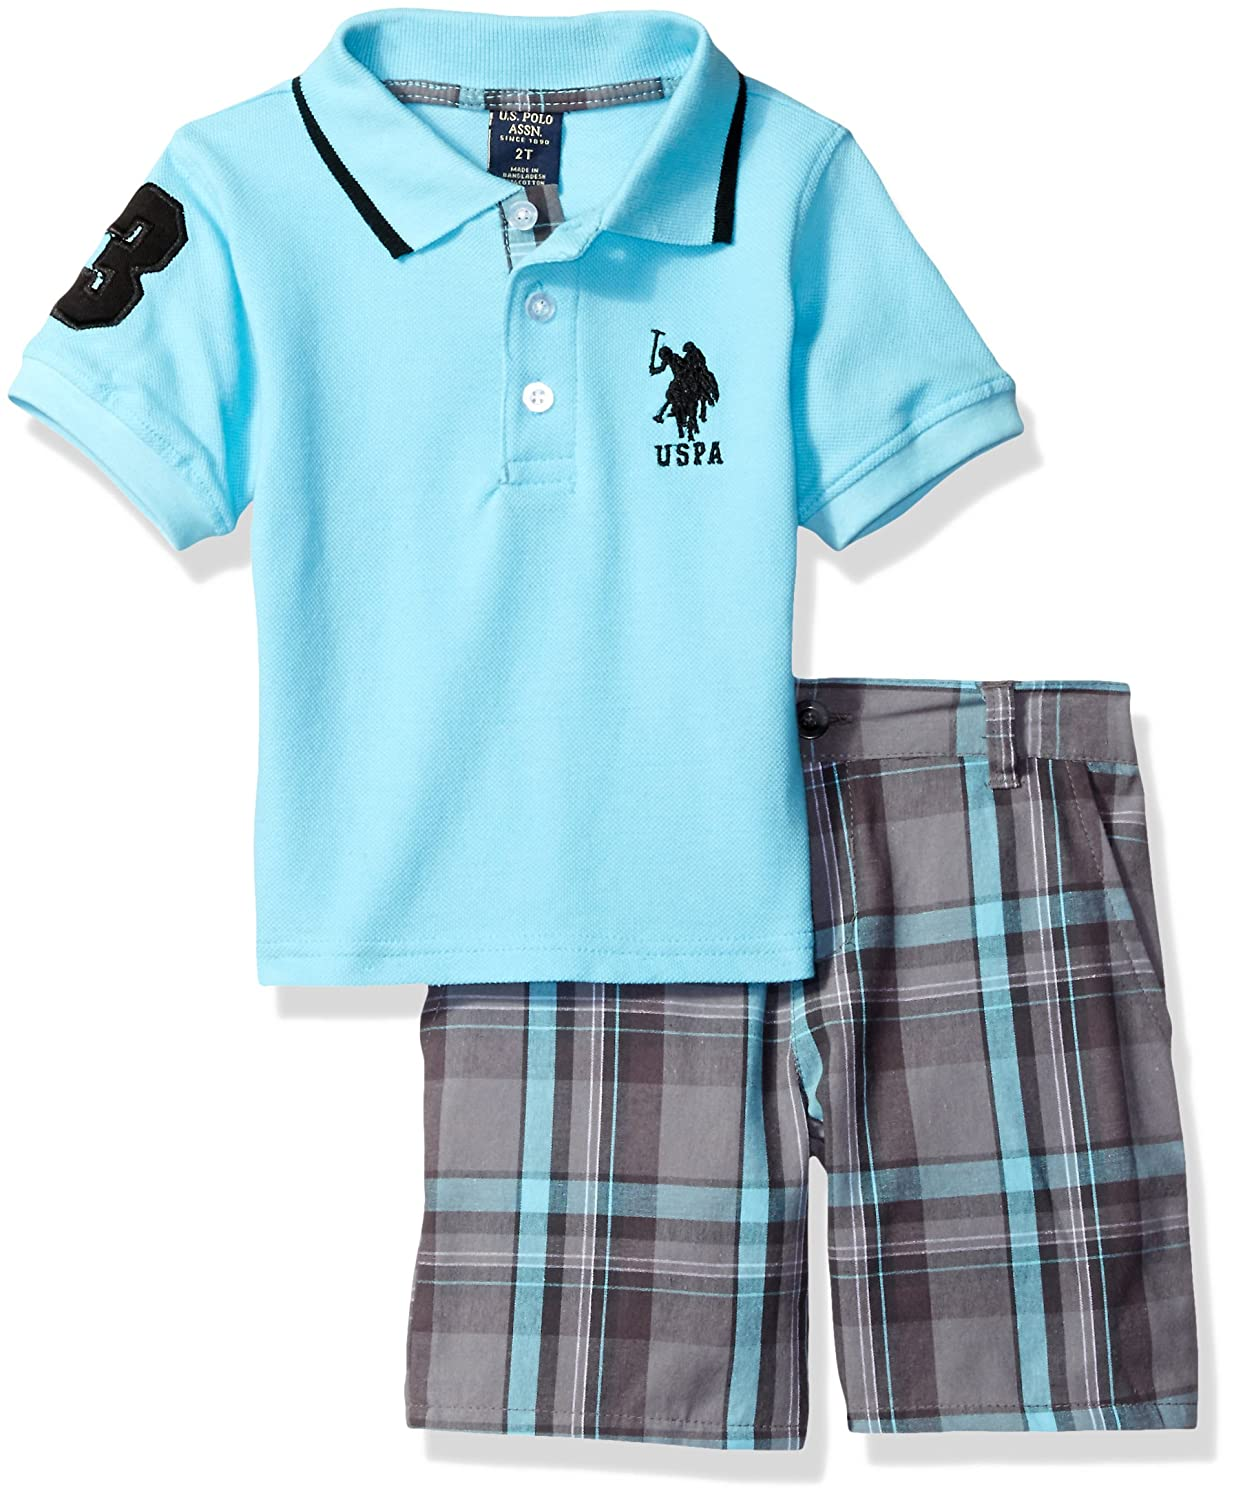 U.S. Polo Assn. Boys' Little Embellished Pique Shirt and Plaid Short